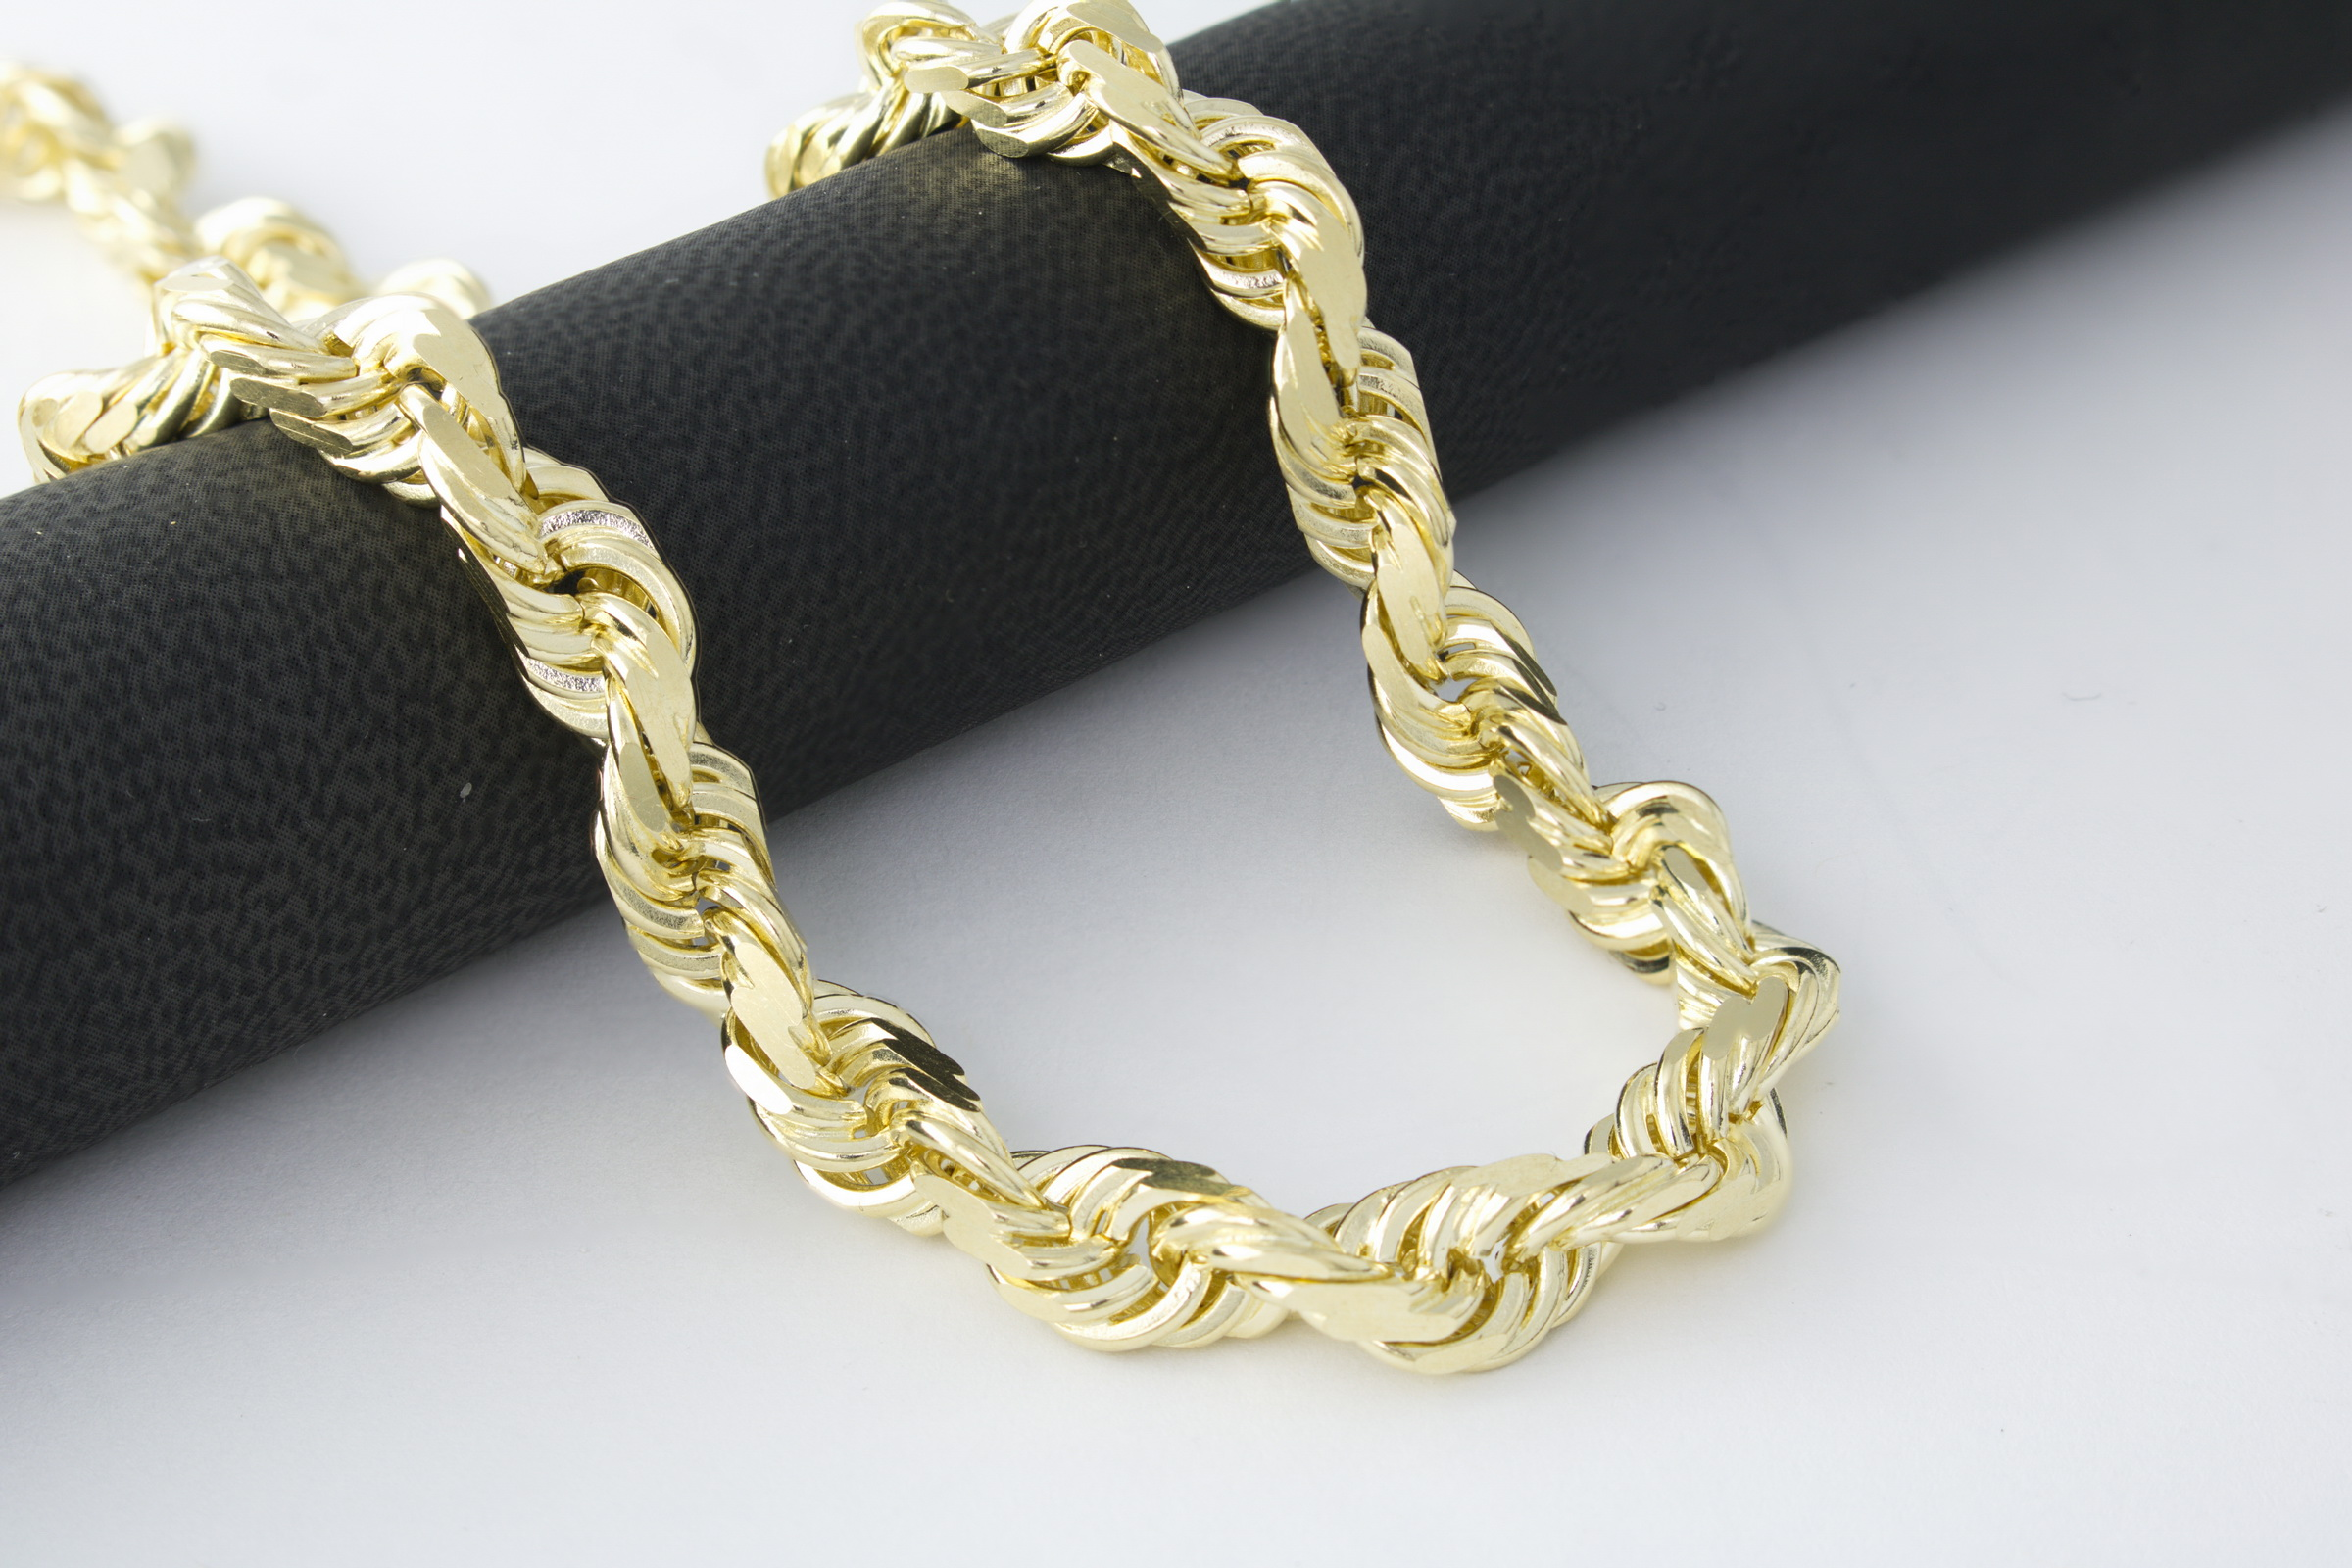 Fashion style Chains gold for men 14k for girls